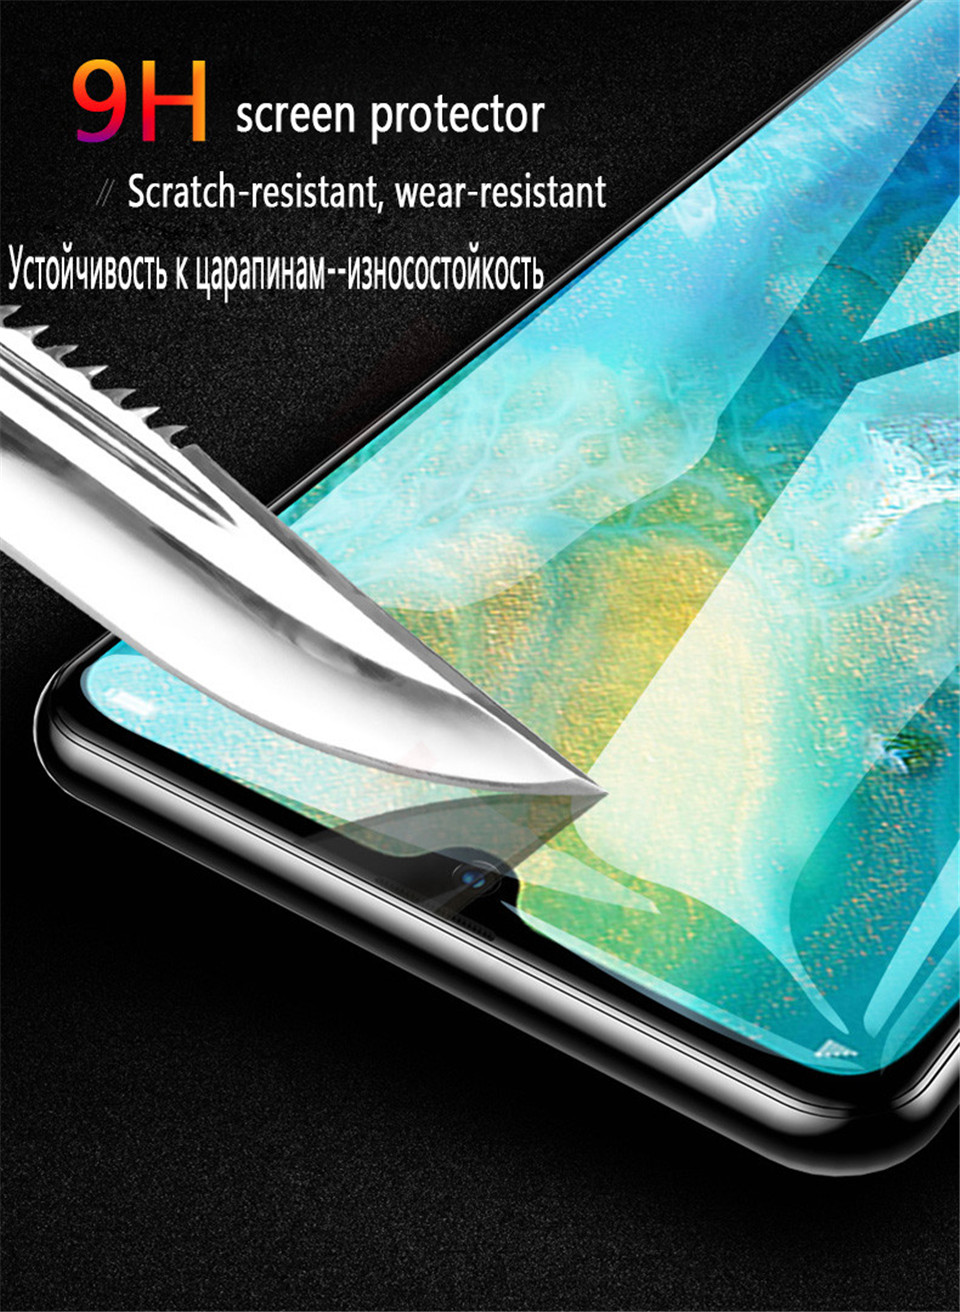 20D Screen Protector Hydrogel Film For Huawei P40 P20 P30 Lite Protective Film For Huawei Mate 20 Pro 10 Lite Film Not Glass HTB1vL46VYvpK1RjSZFqq6AXUVXaJ